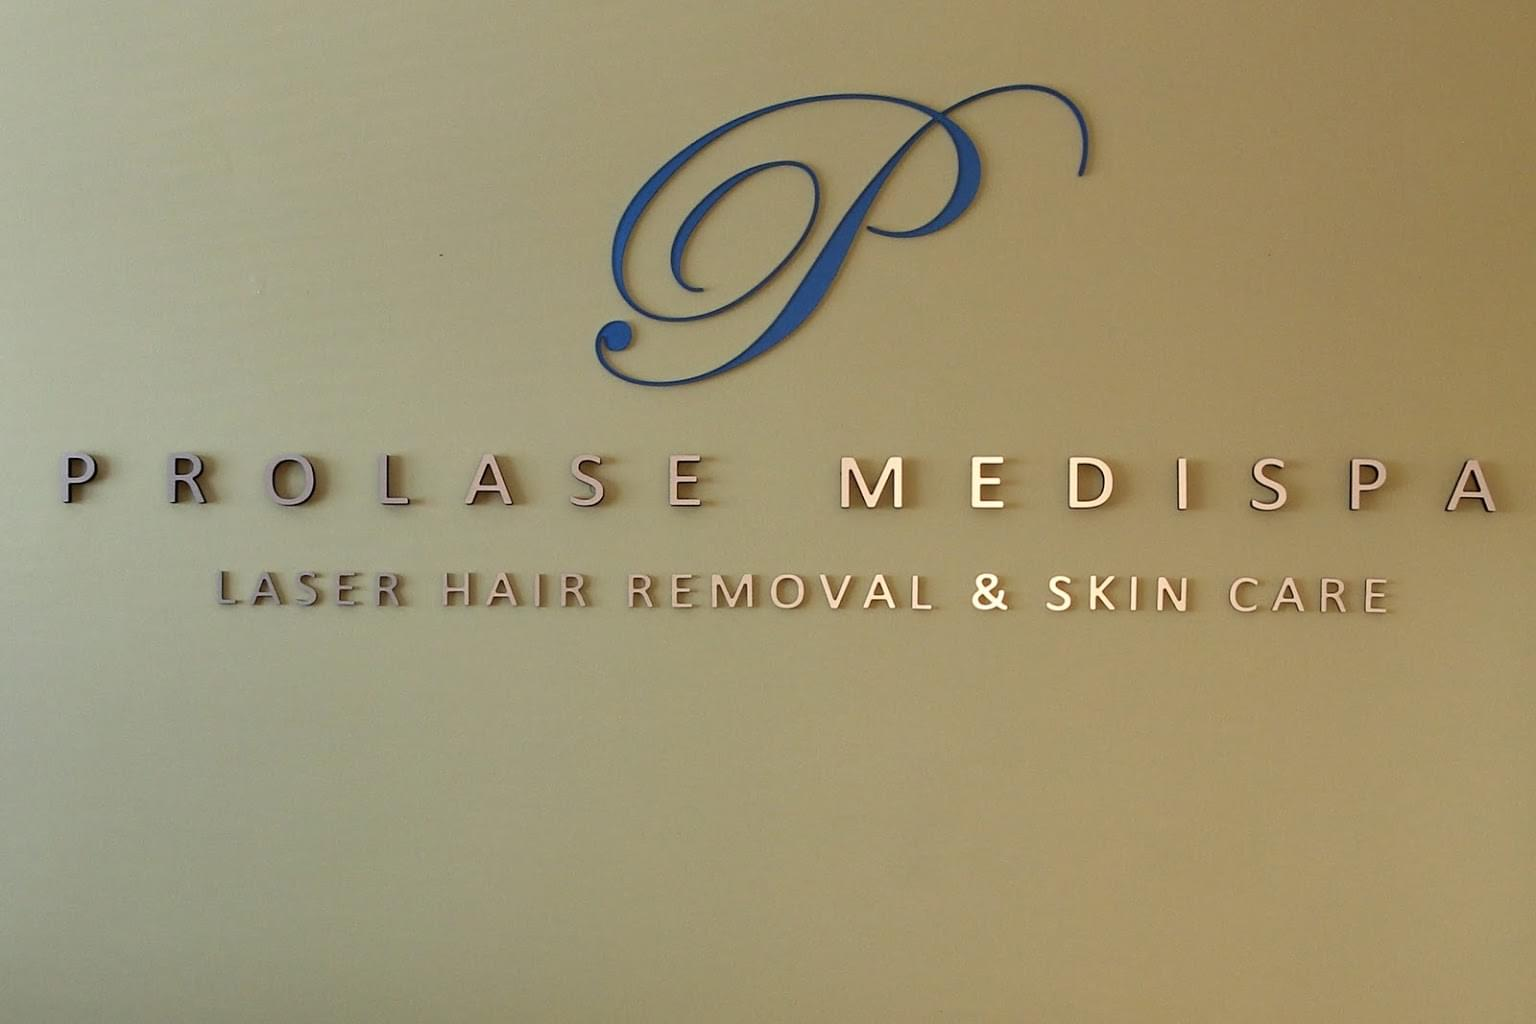 Prolase Medispa medical spa in Arlington, VA